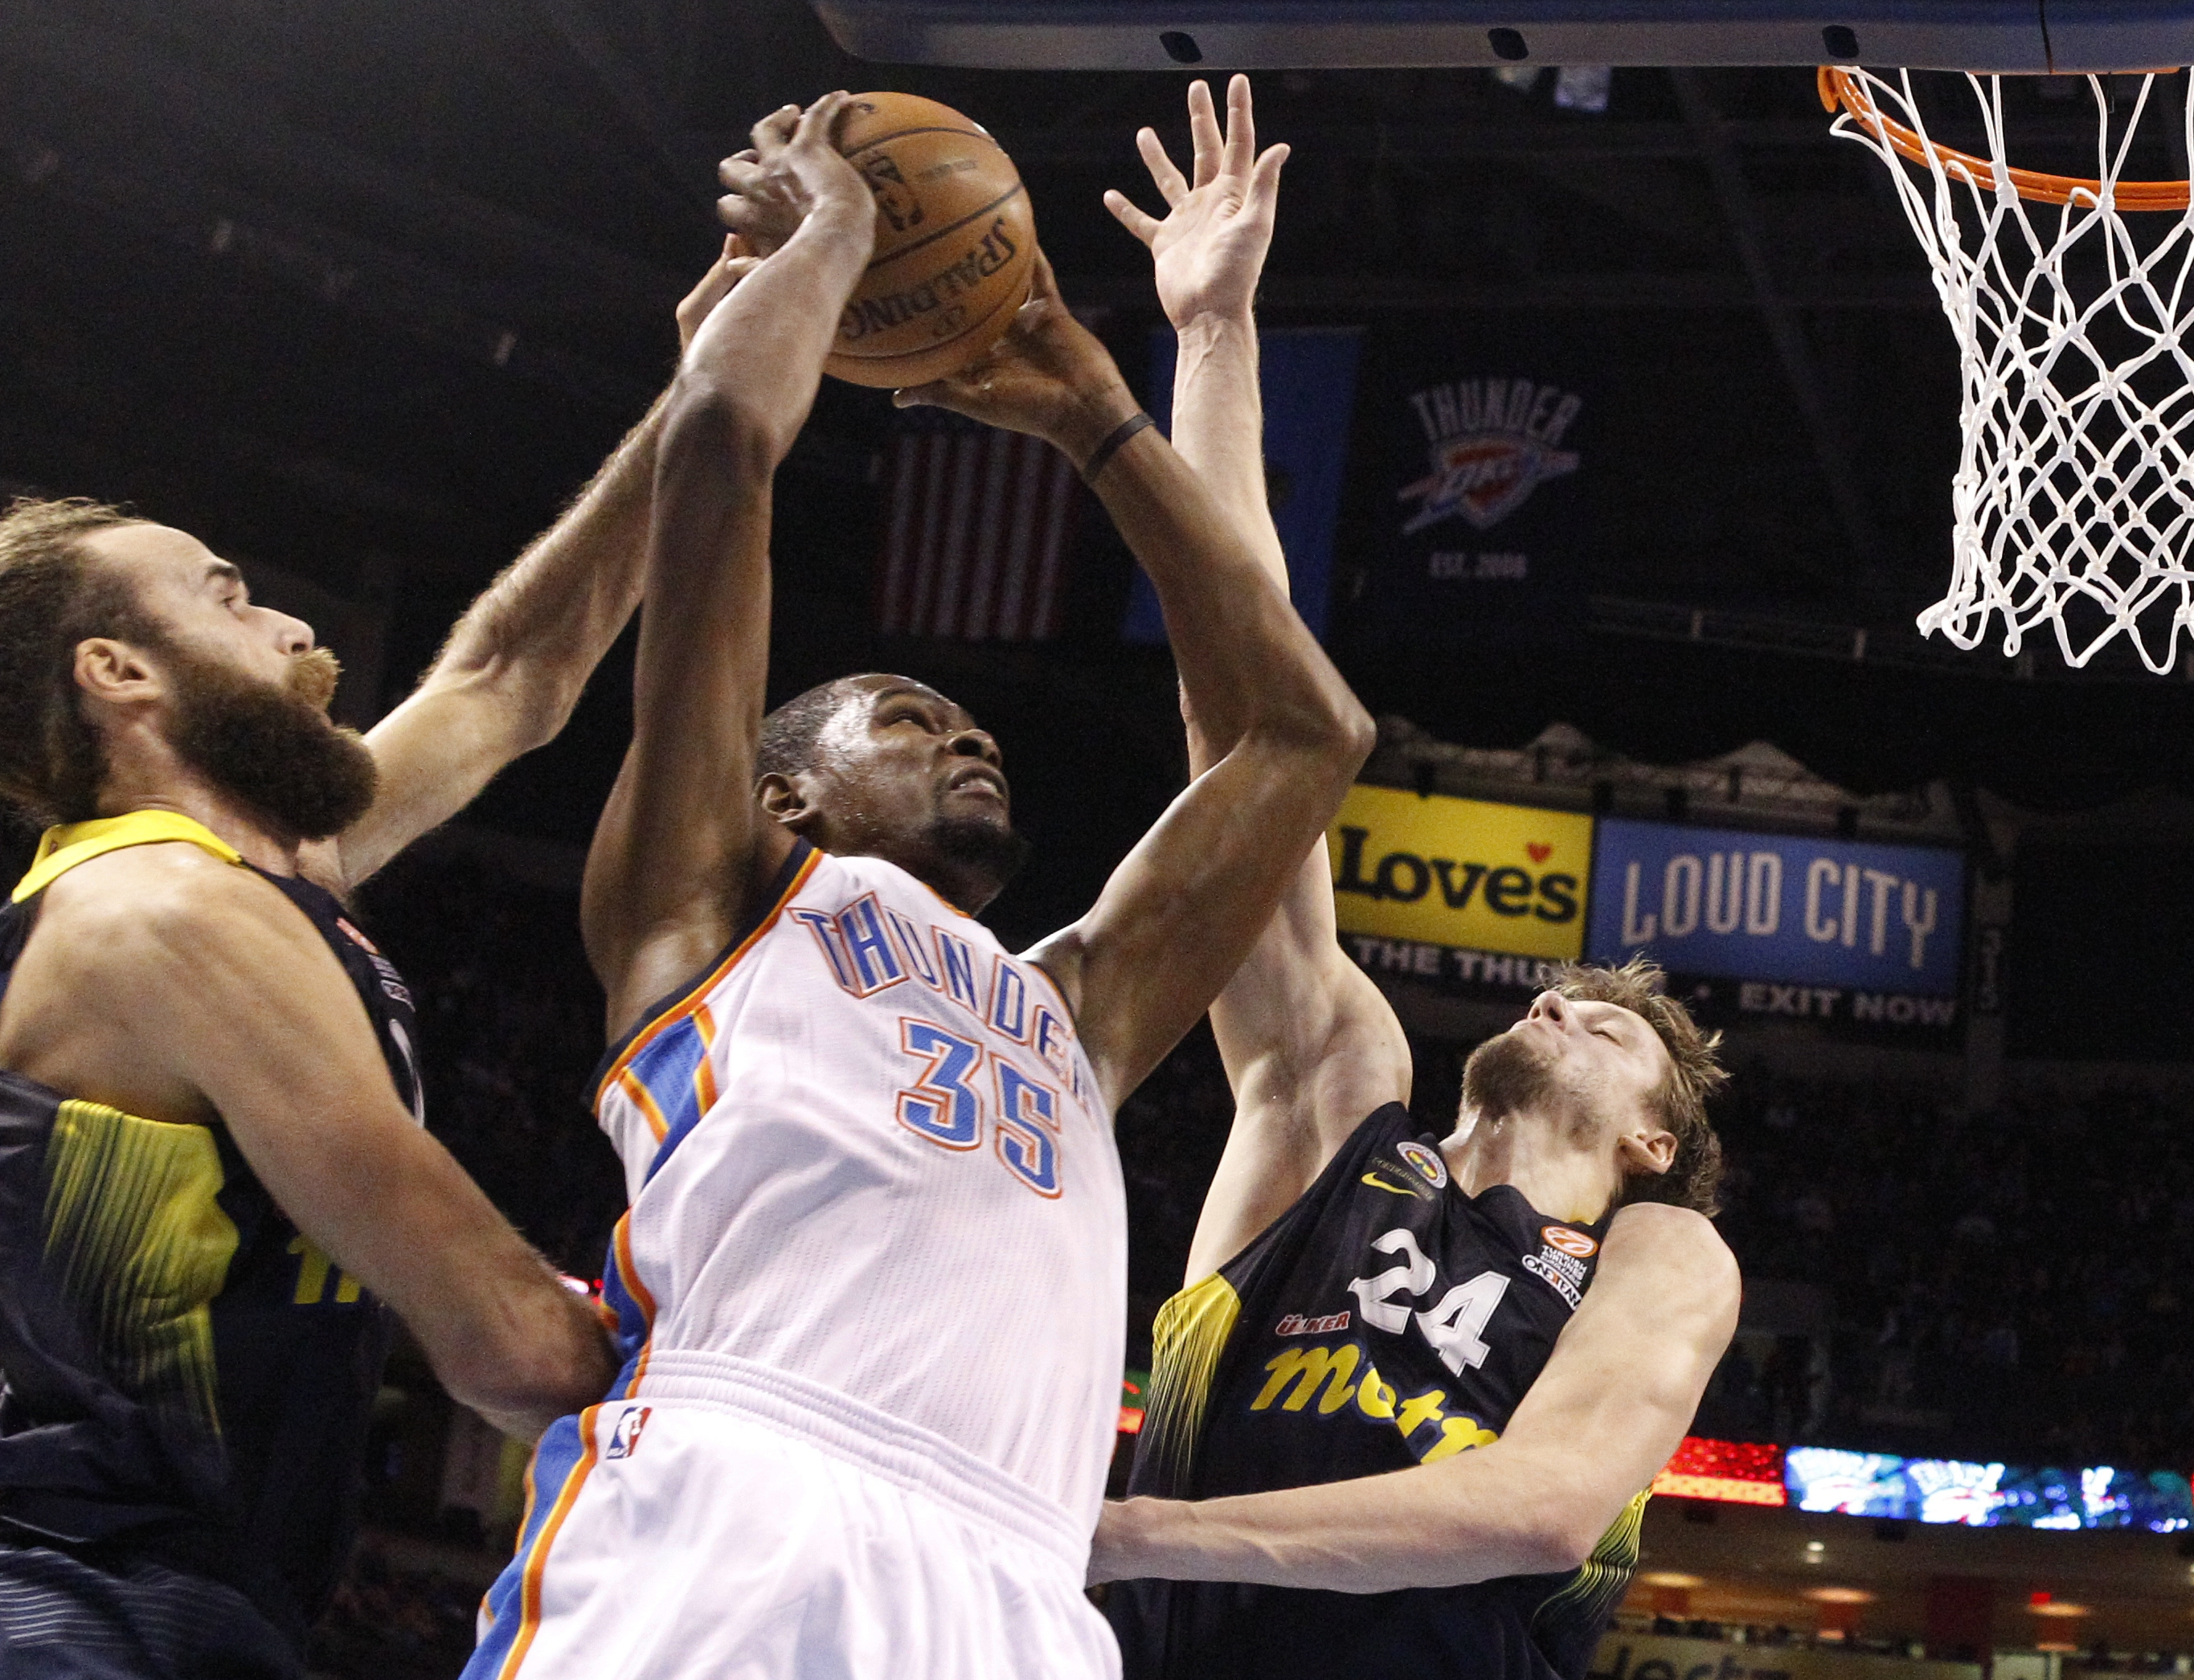 Oklahoma City Thunder forward Kevin Durant (35) shoots between Fenerbahce Ulker's Luigi Datome, left, and Jan Vesely (24) in the first quarter of an NBA basketball preseason game in Oklahoma City, Friday, Oct. 9, 2015. (AP Photo/Sue Ogrocki)